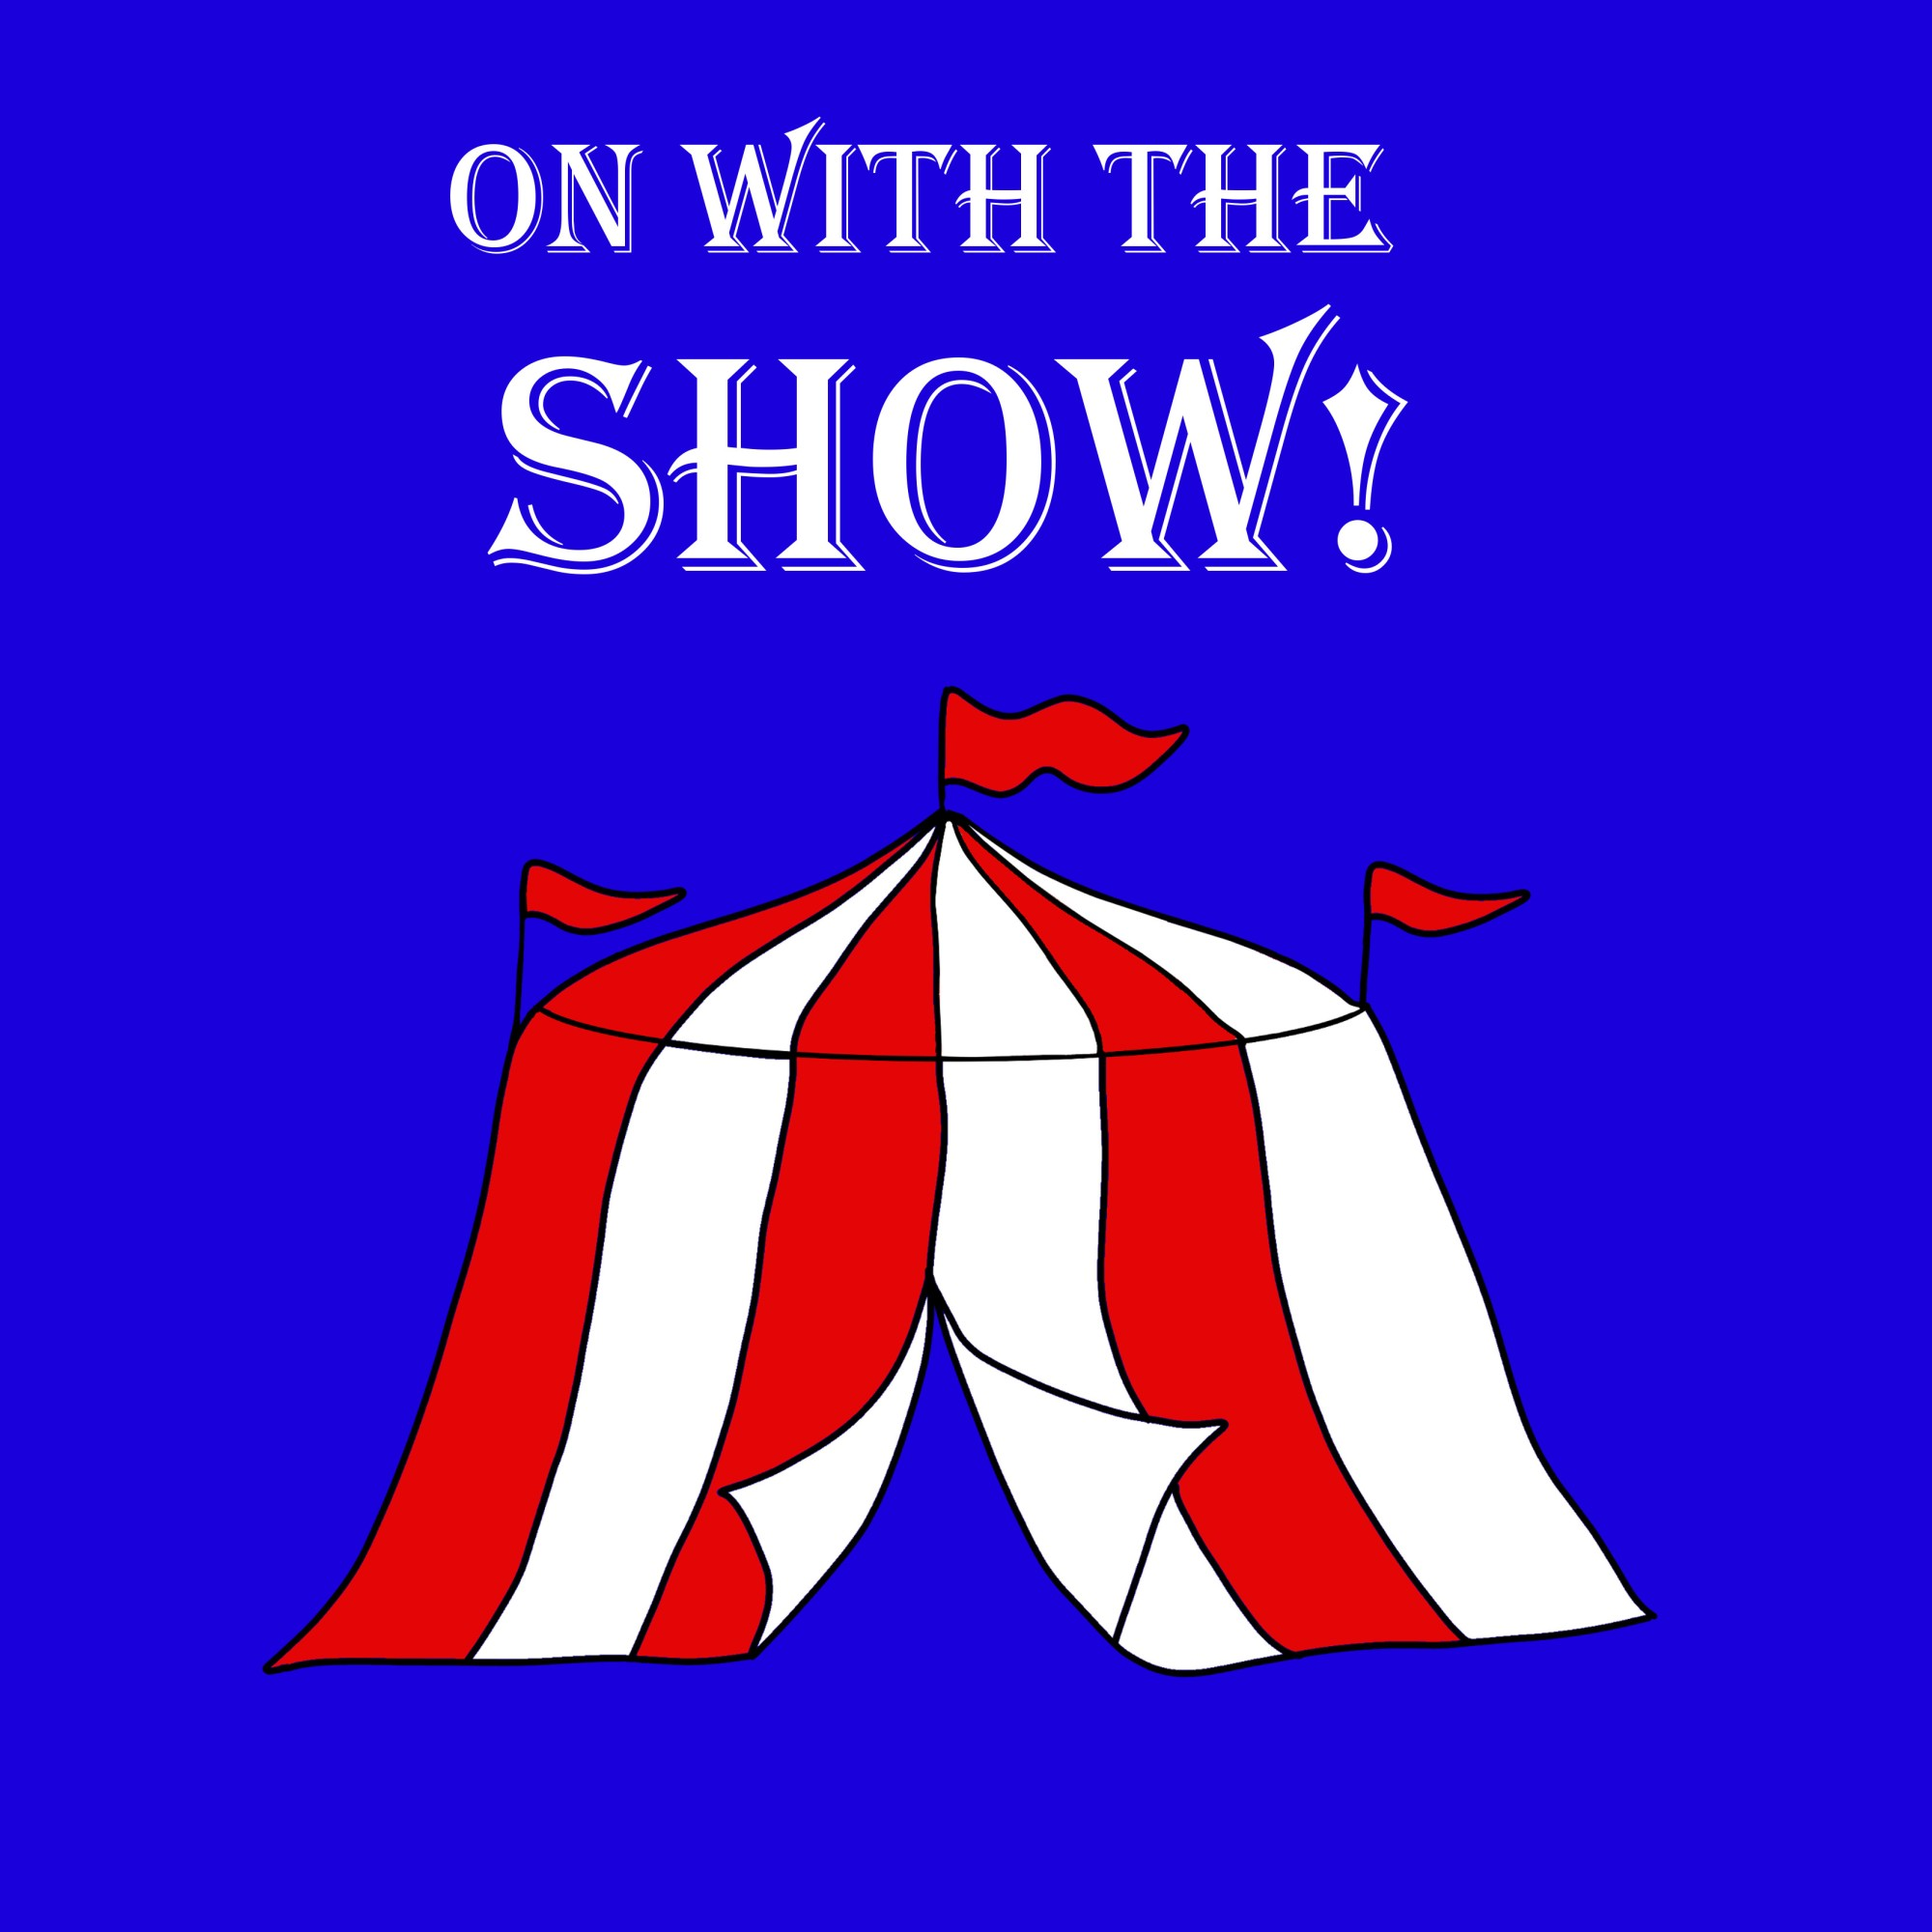 Handrawn cartoon of Big Top Cirucs tent with cheerful message to carry on.